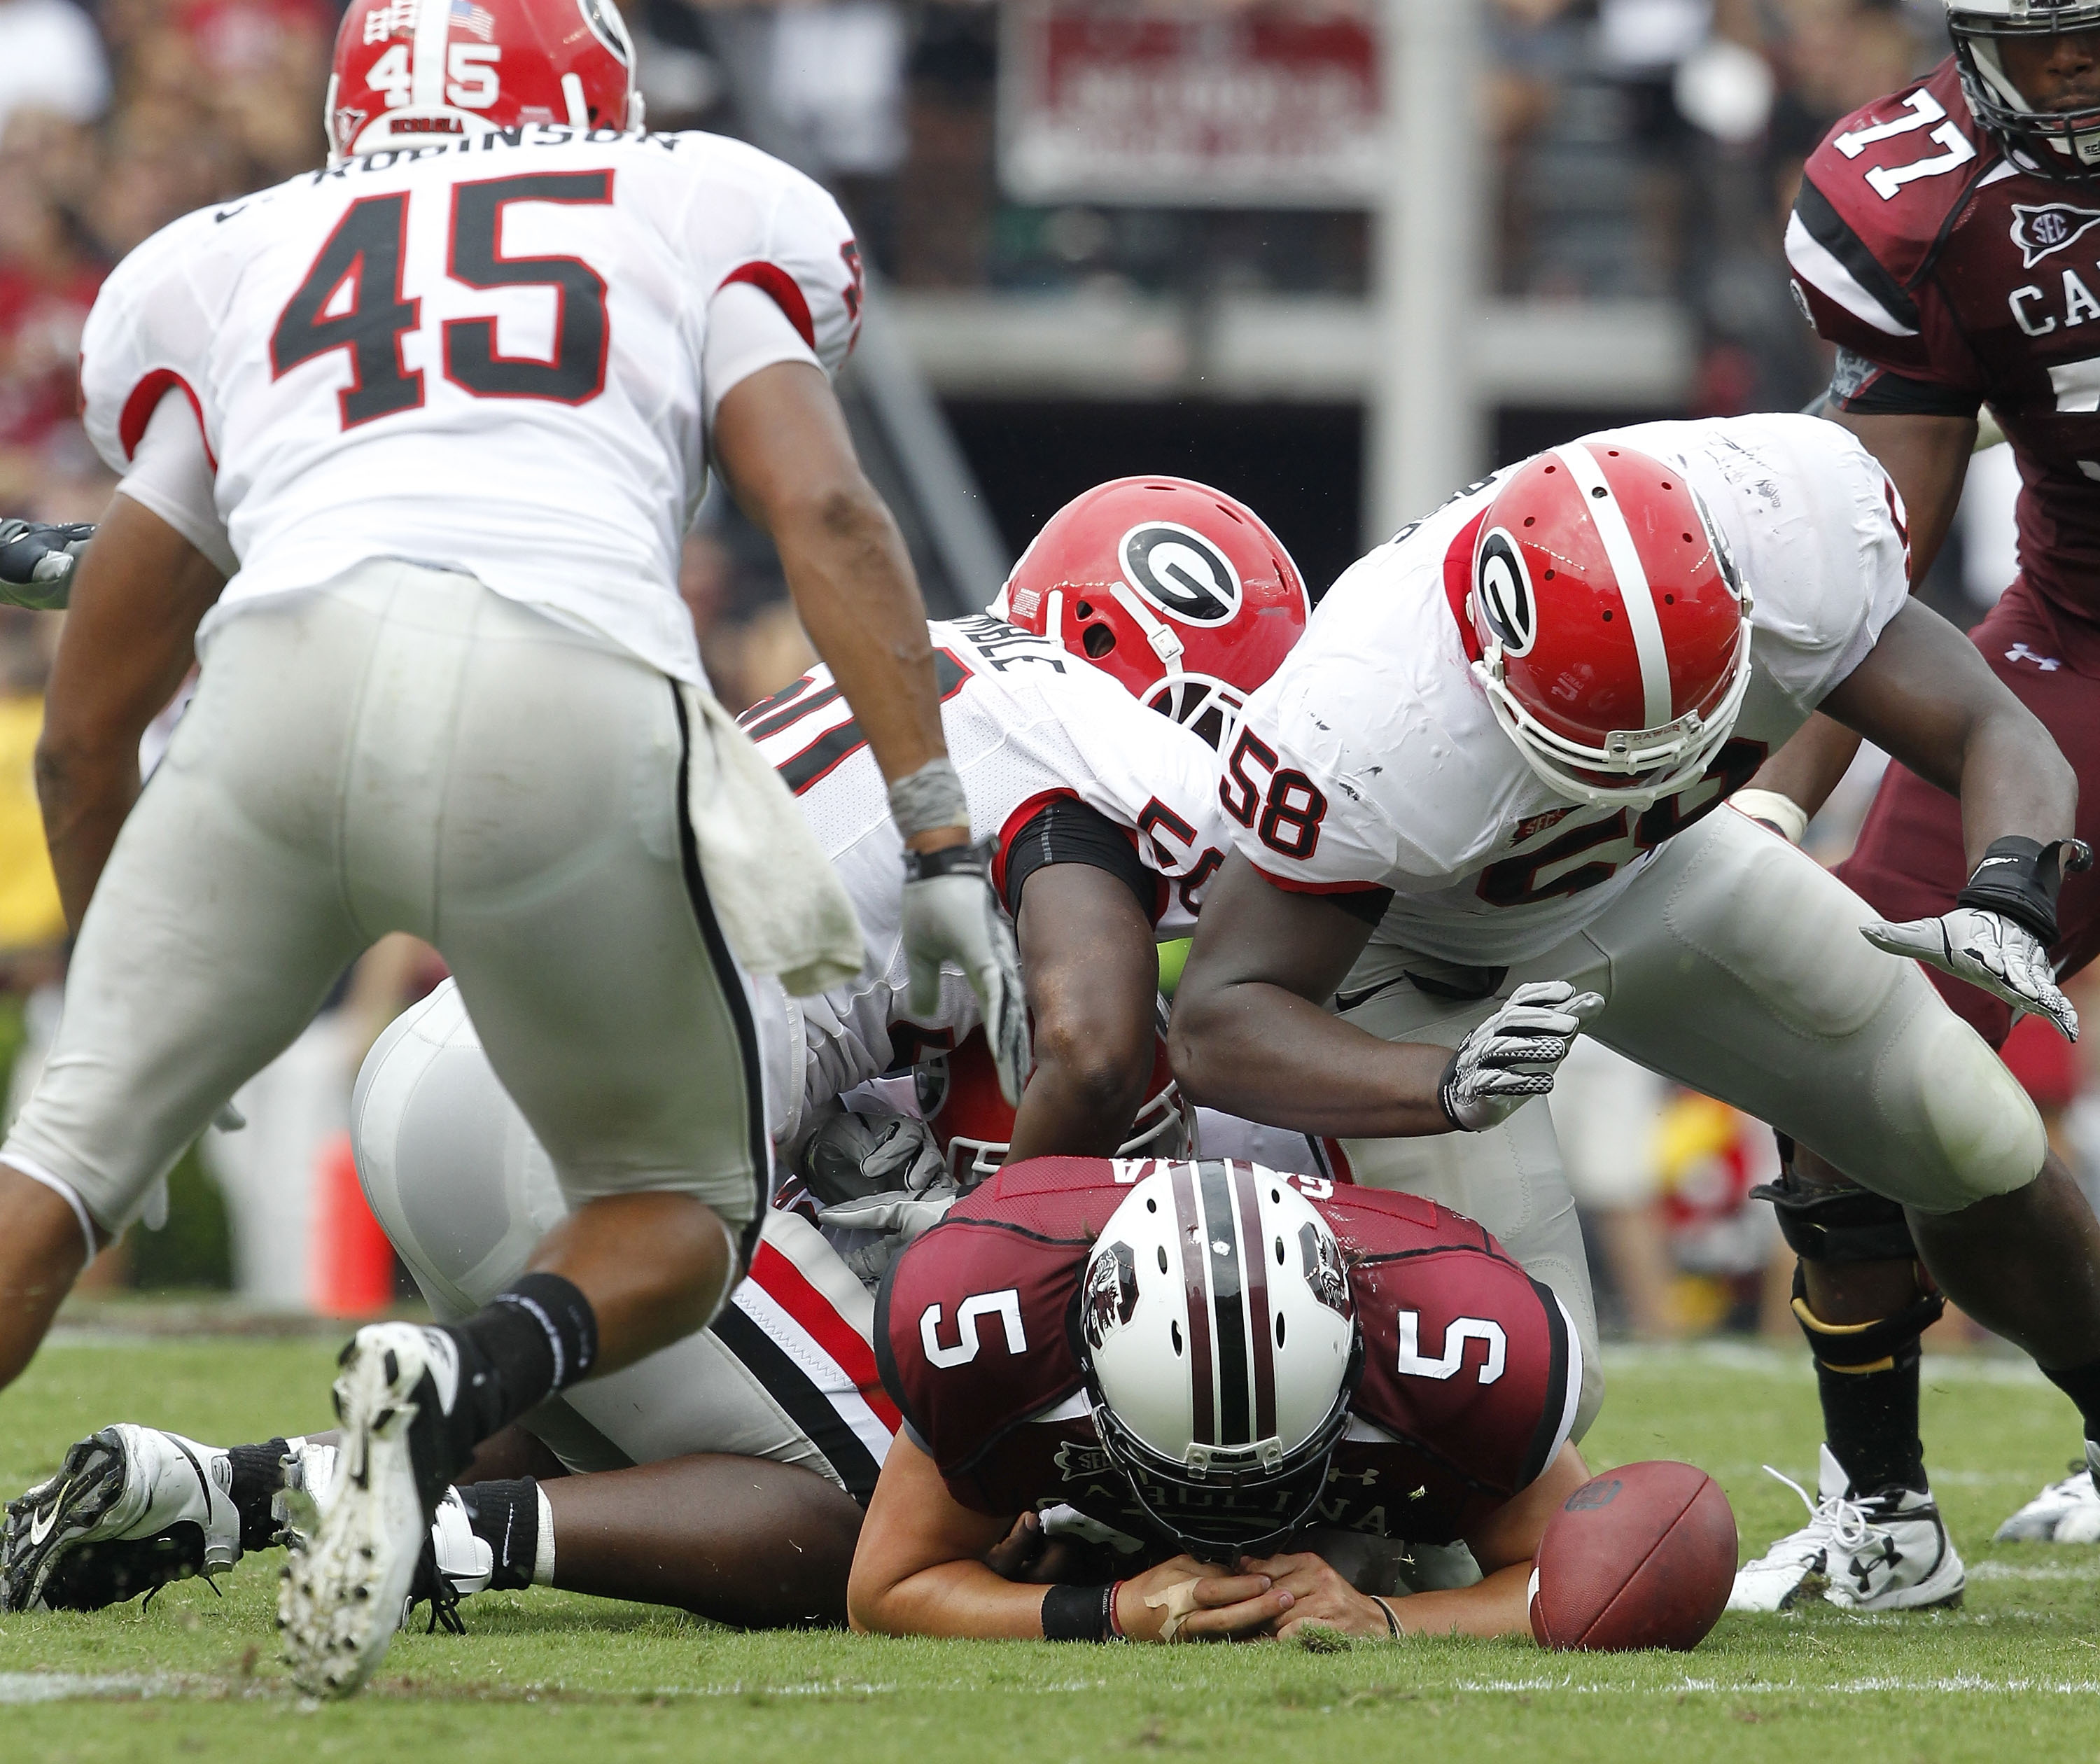 COLUMBIA, SC - SEPTEMBER 11: Quarterback Steven Garcia #5 of the South Carolina Gamecocks fumbles after being hit by defensive end Demarcus Dobbs #58 of the Georgia Bulldogs during the game at Williams-Brice Stadium on September 11, 2010 in Columbia, Sout